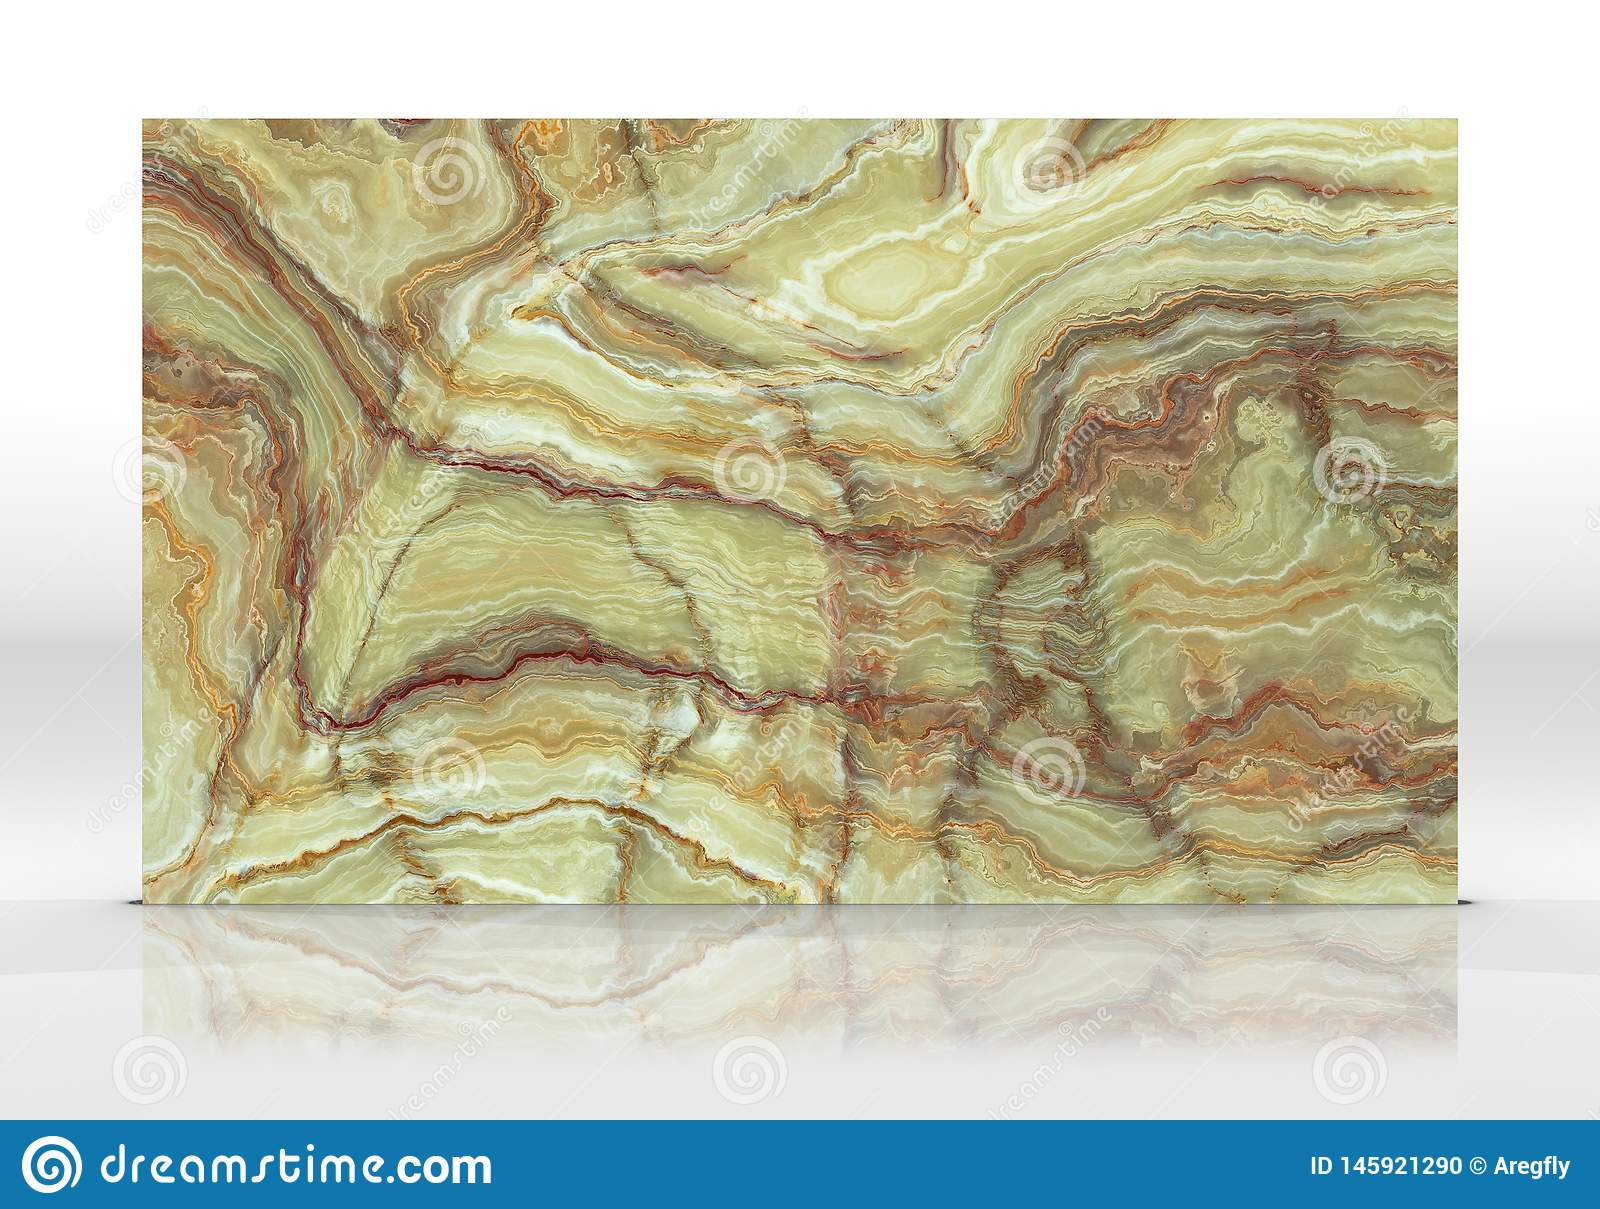 Green Onyx Marble Tile Texture Stock Photo Image Of Color Beauty 145921290